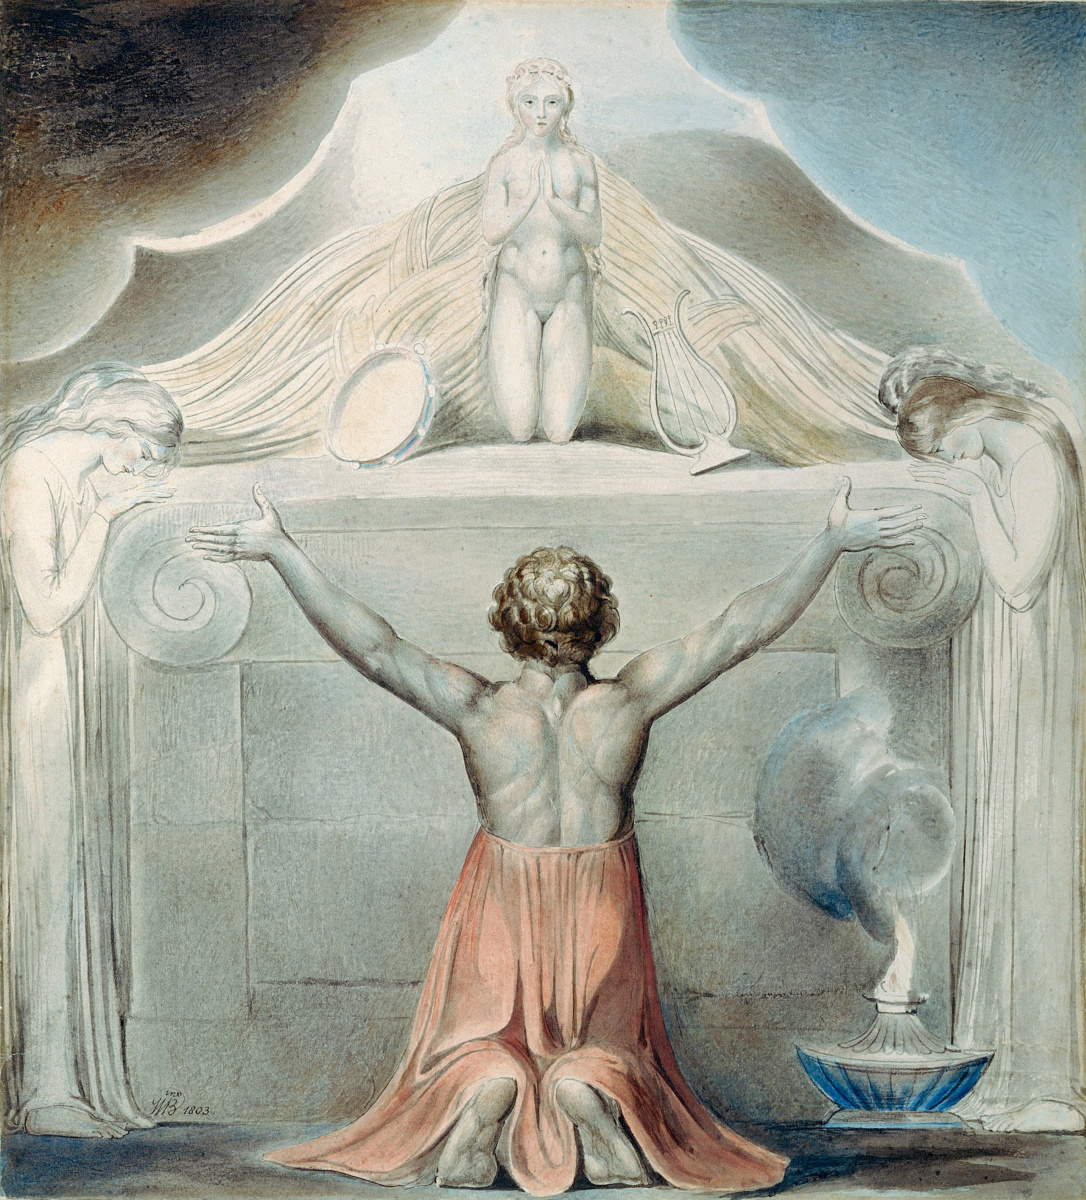 William Blake. Illustrations of the Bible. The sacrifice of Jephthah's daughter